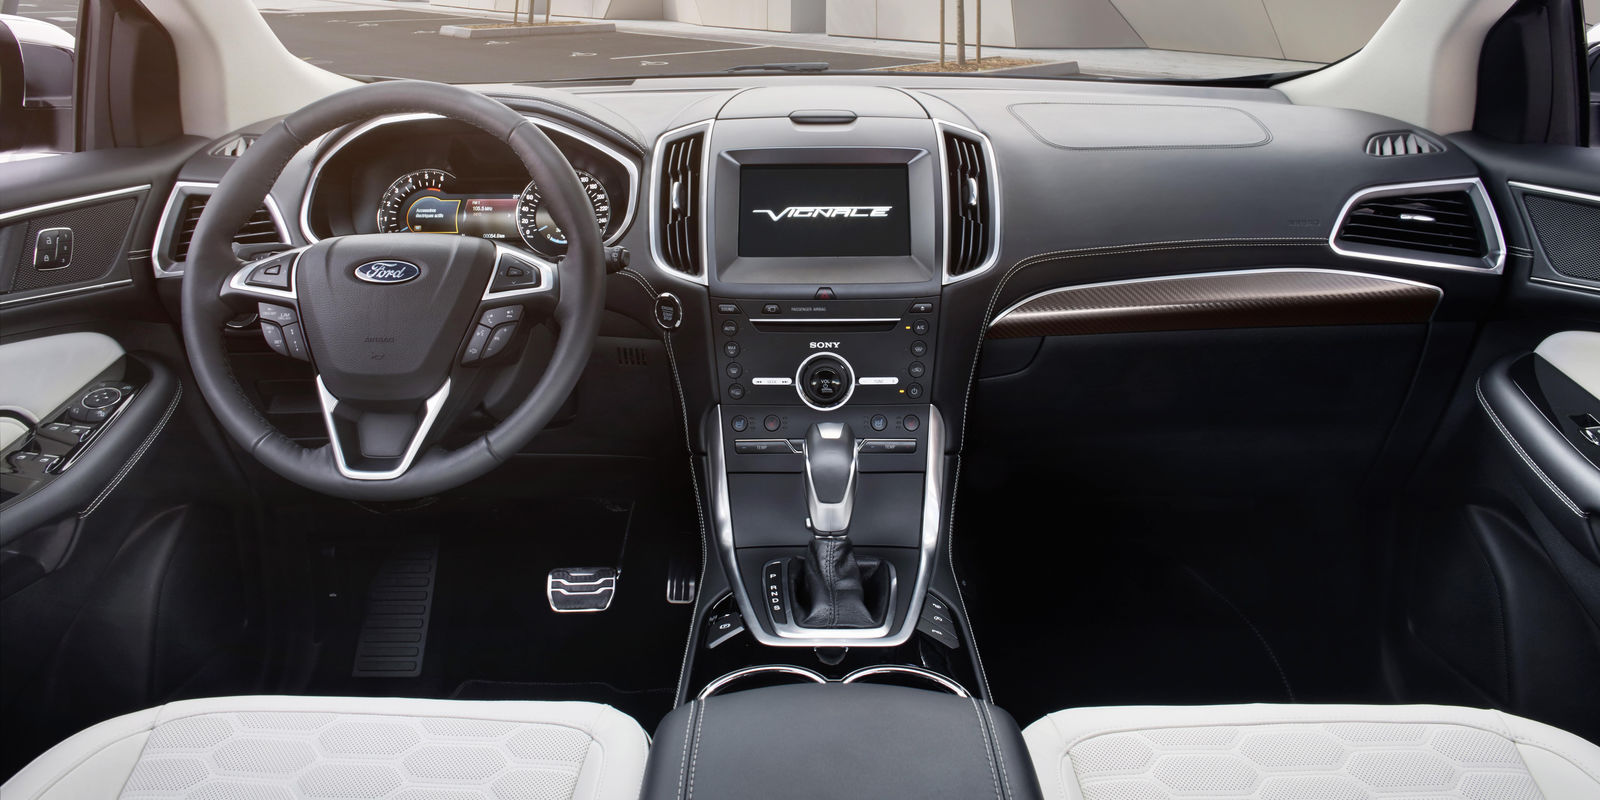 Ford Edge Vignale Review Carwow Ford Edge Size Compared To Explorer Ford Edge Size Compared To Kuga